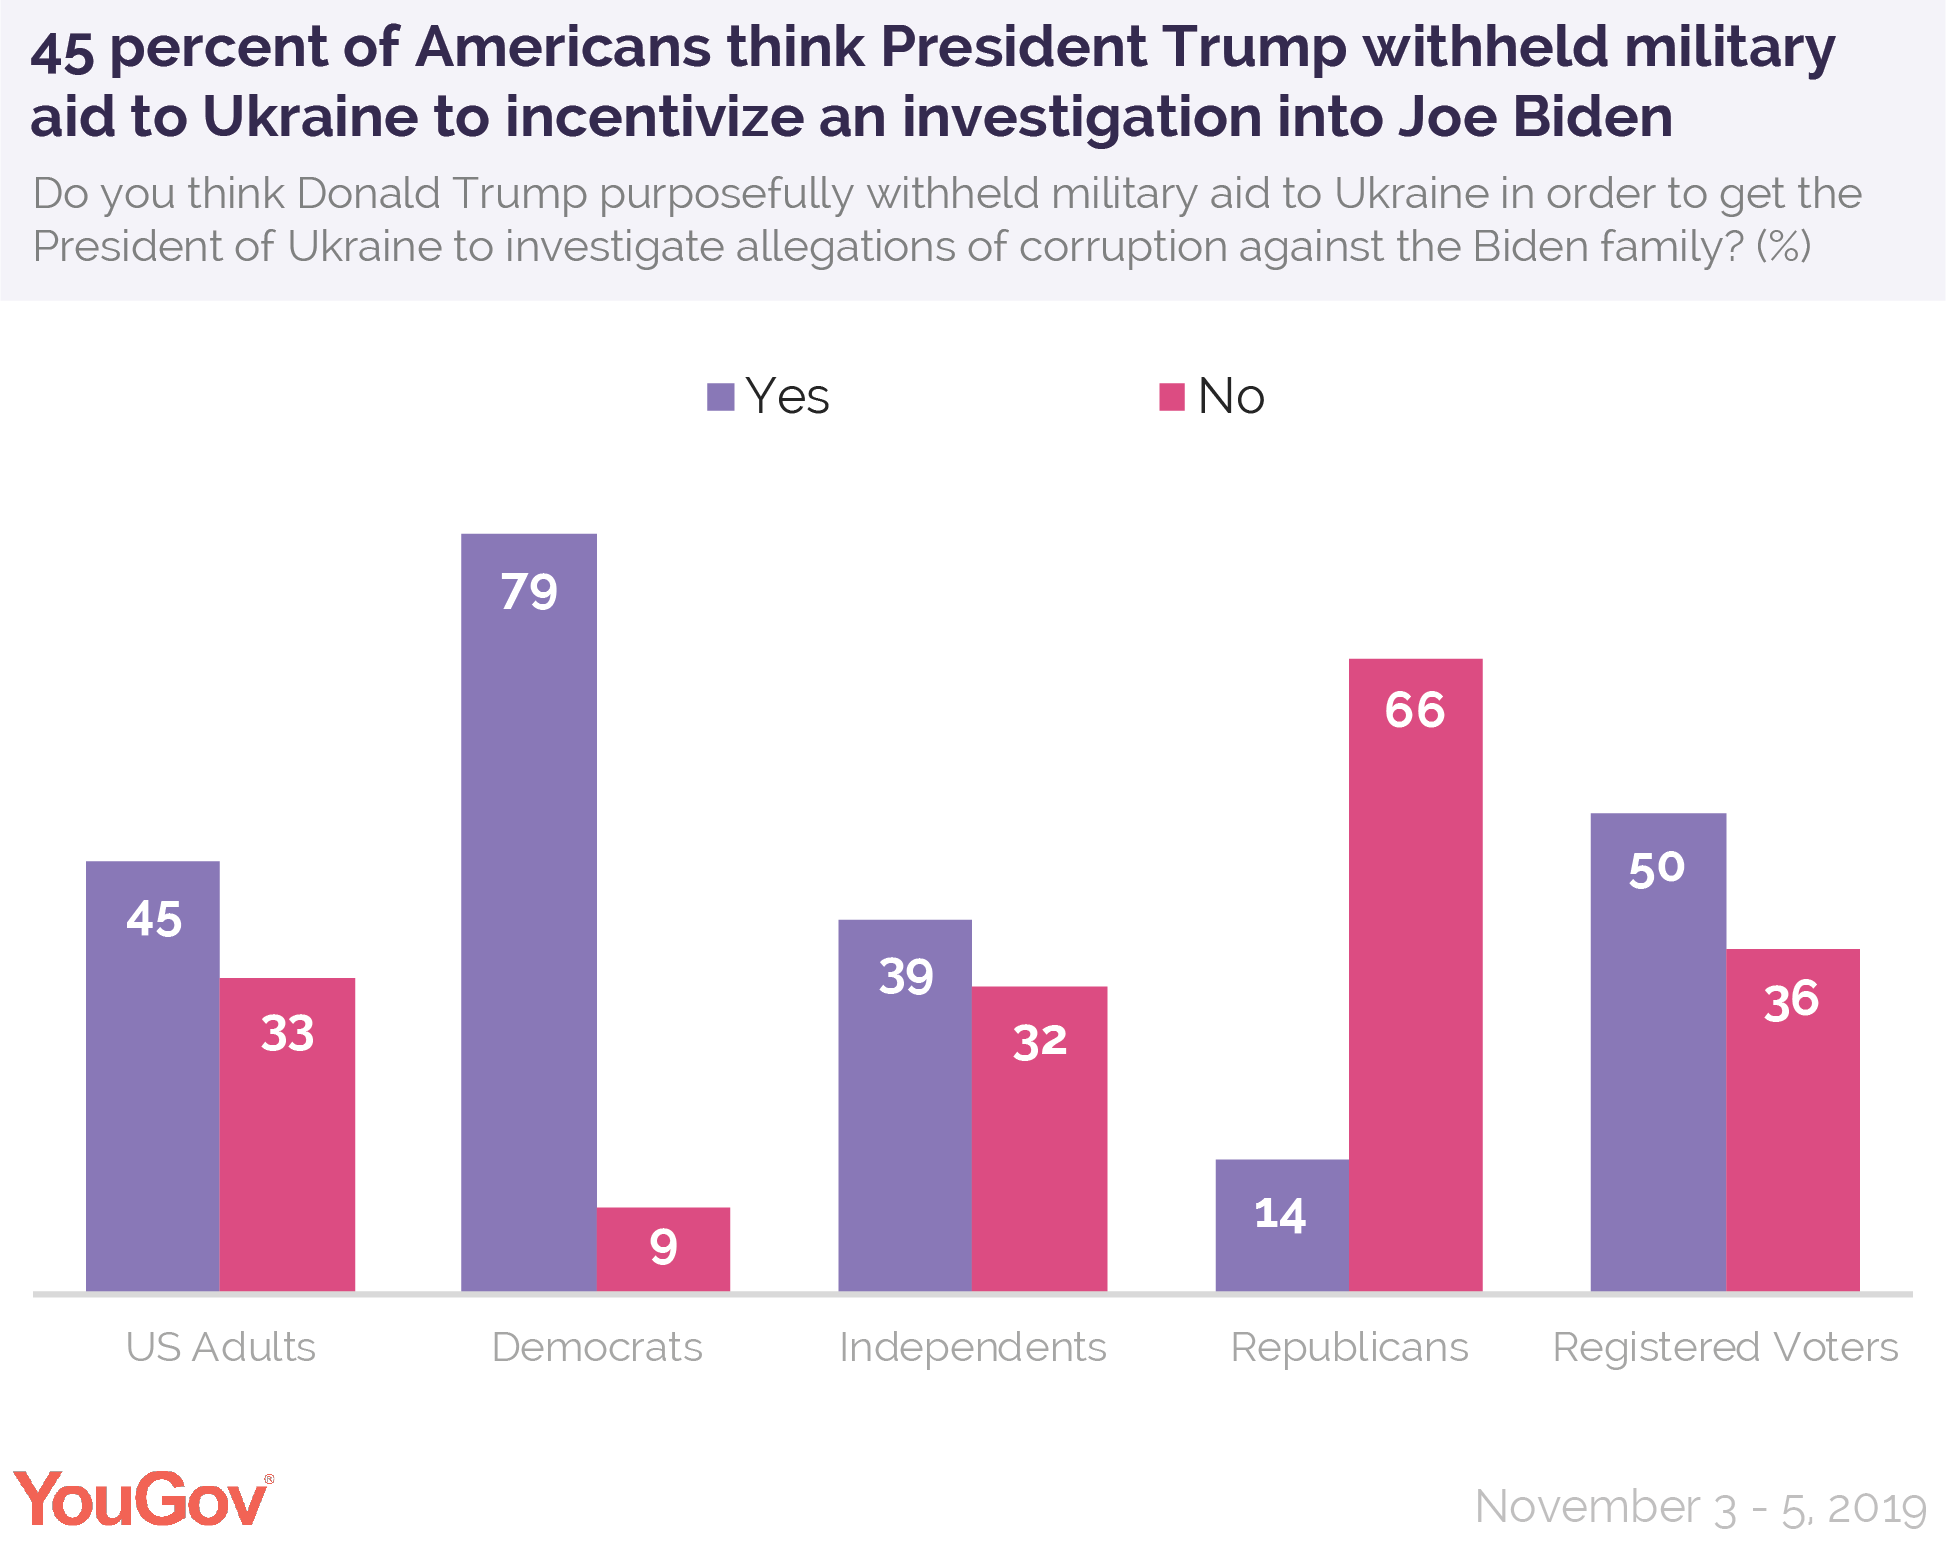 45 percent of Americans think President Donald Trump withheld military aid to Ukraine to incentivize an investigation into Joe Biden